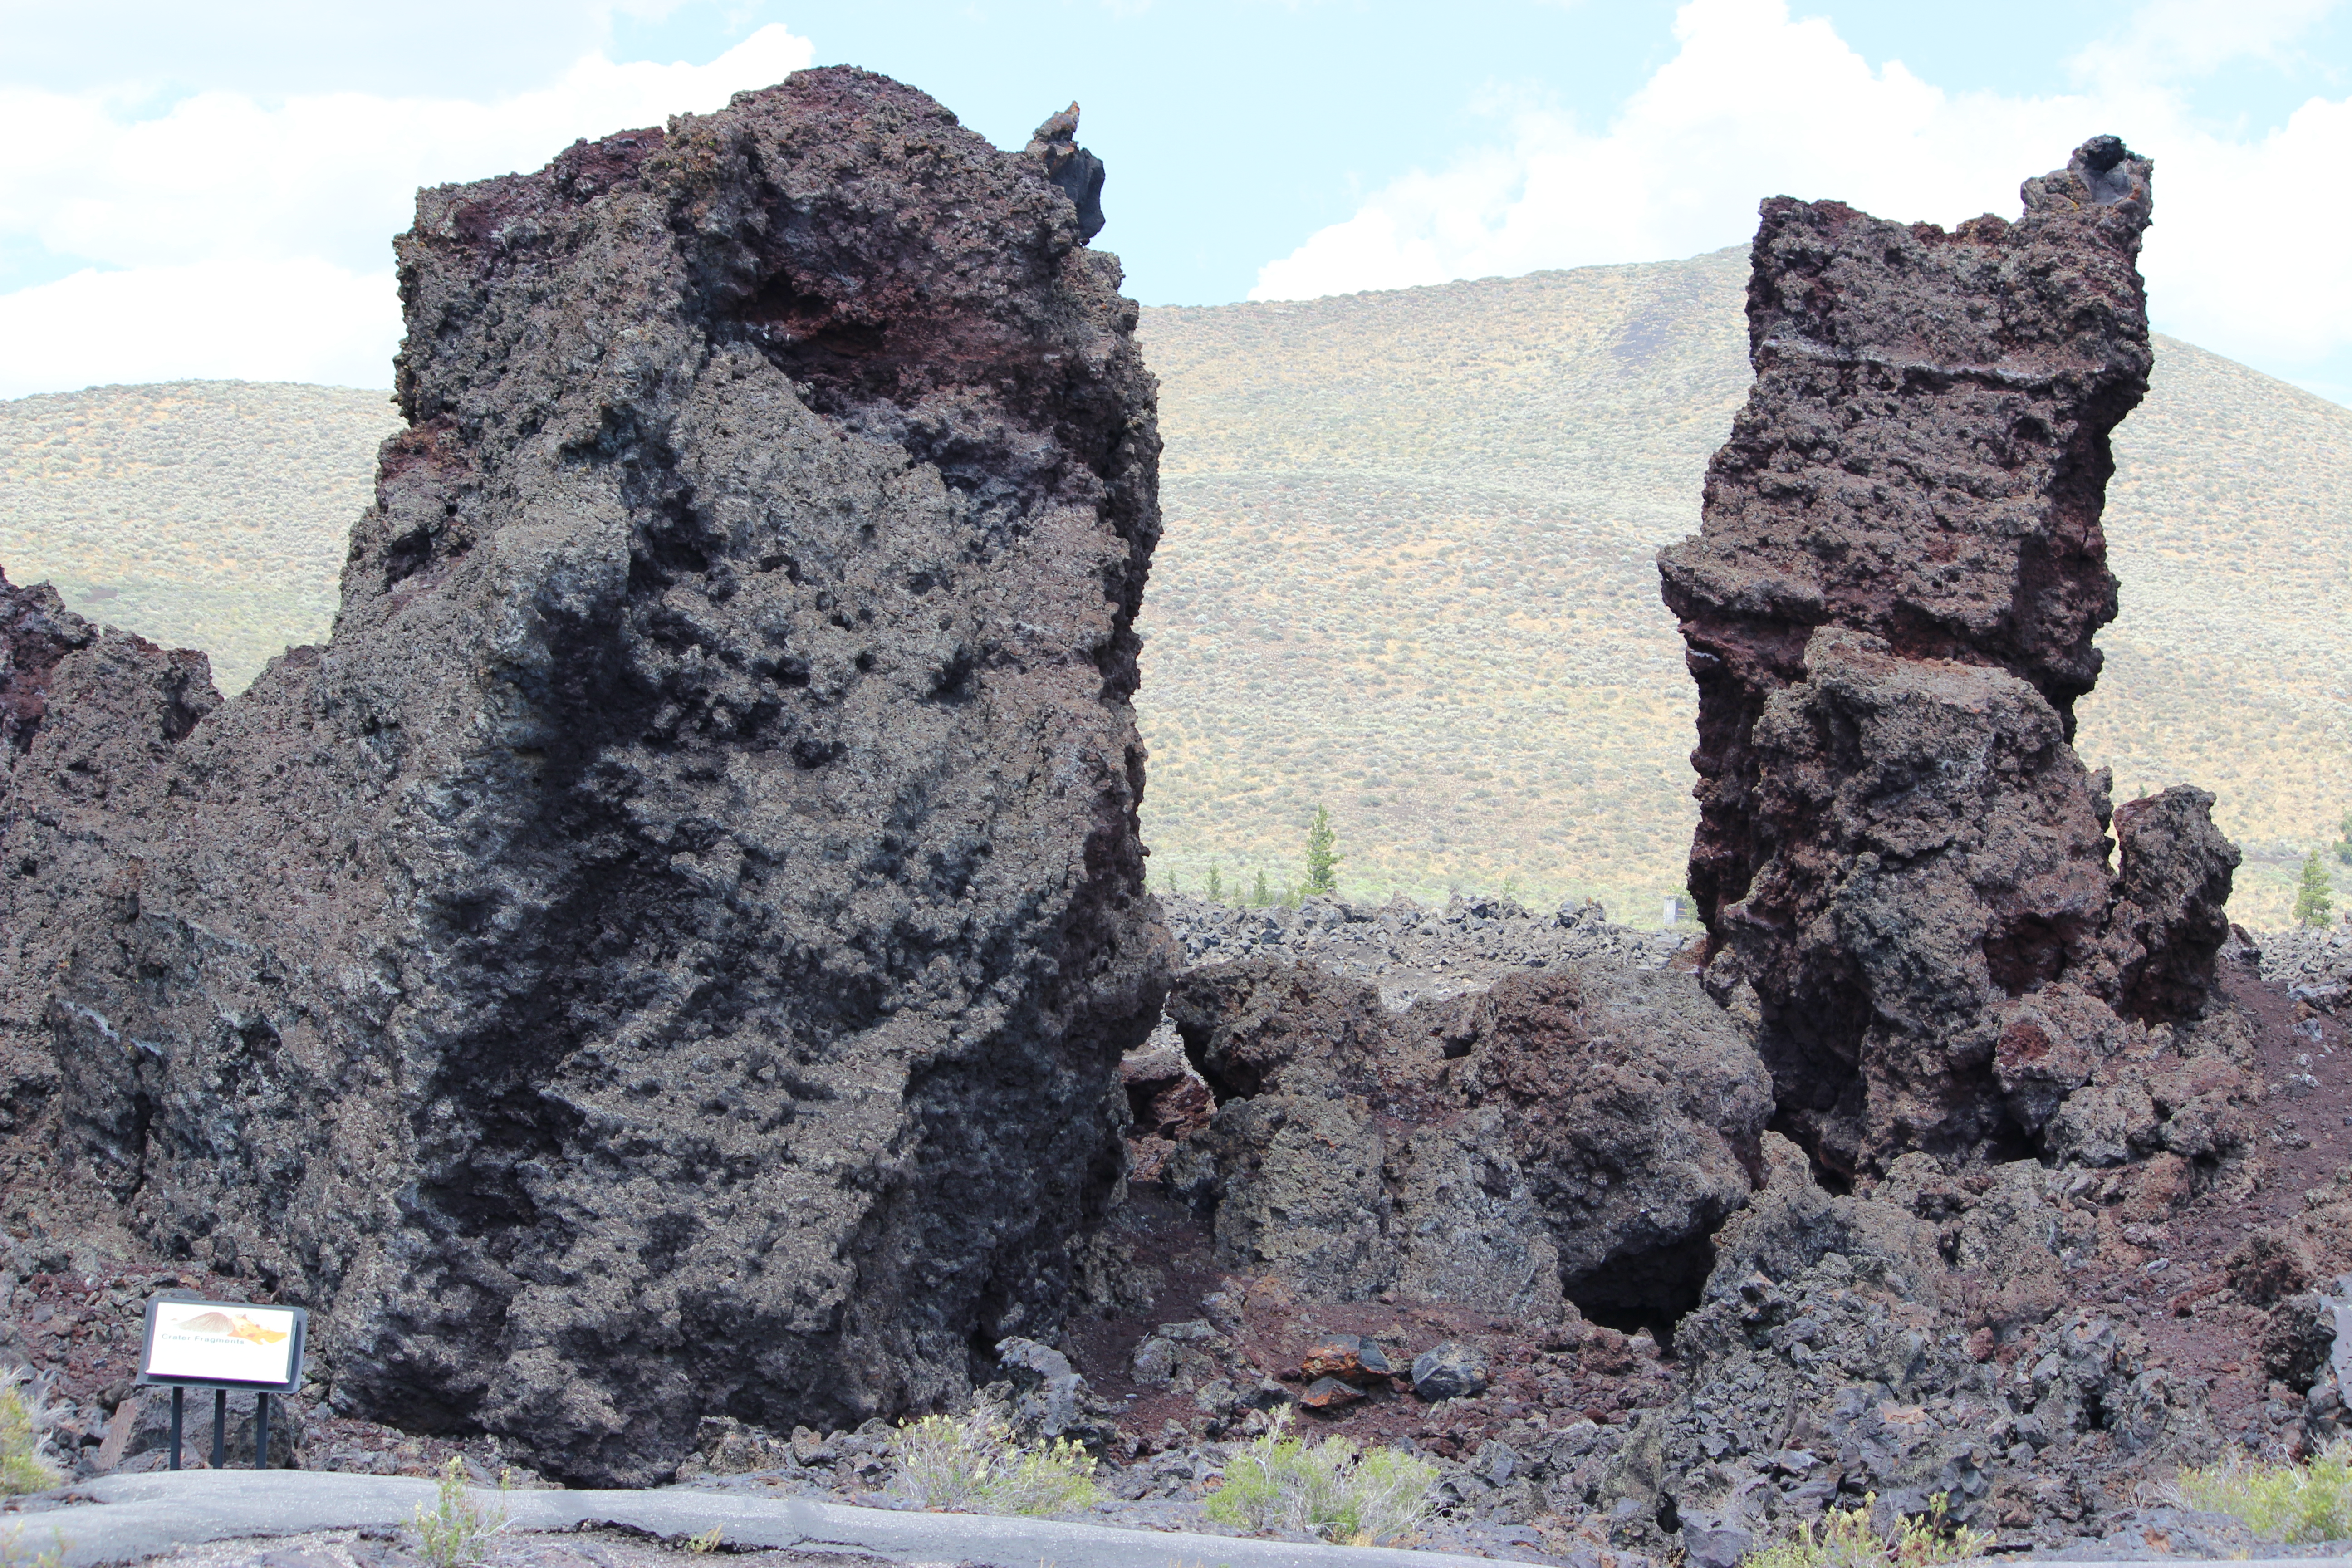 Craters of the Moon National Monument : Podcast 6